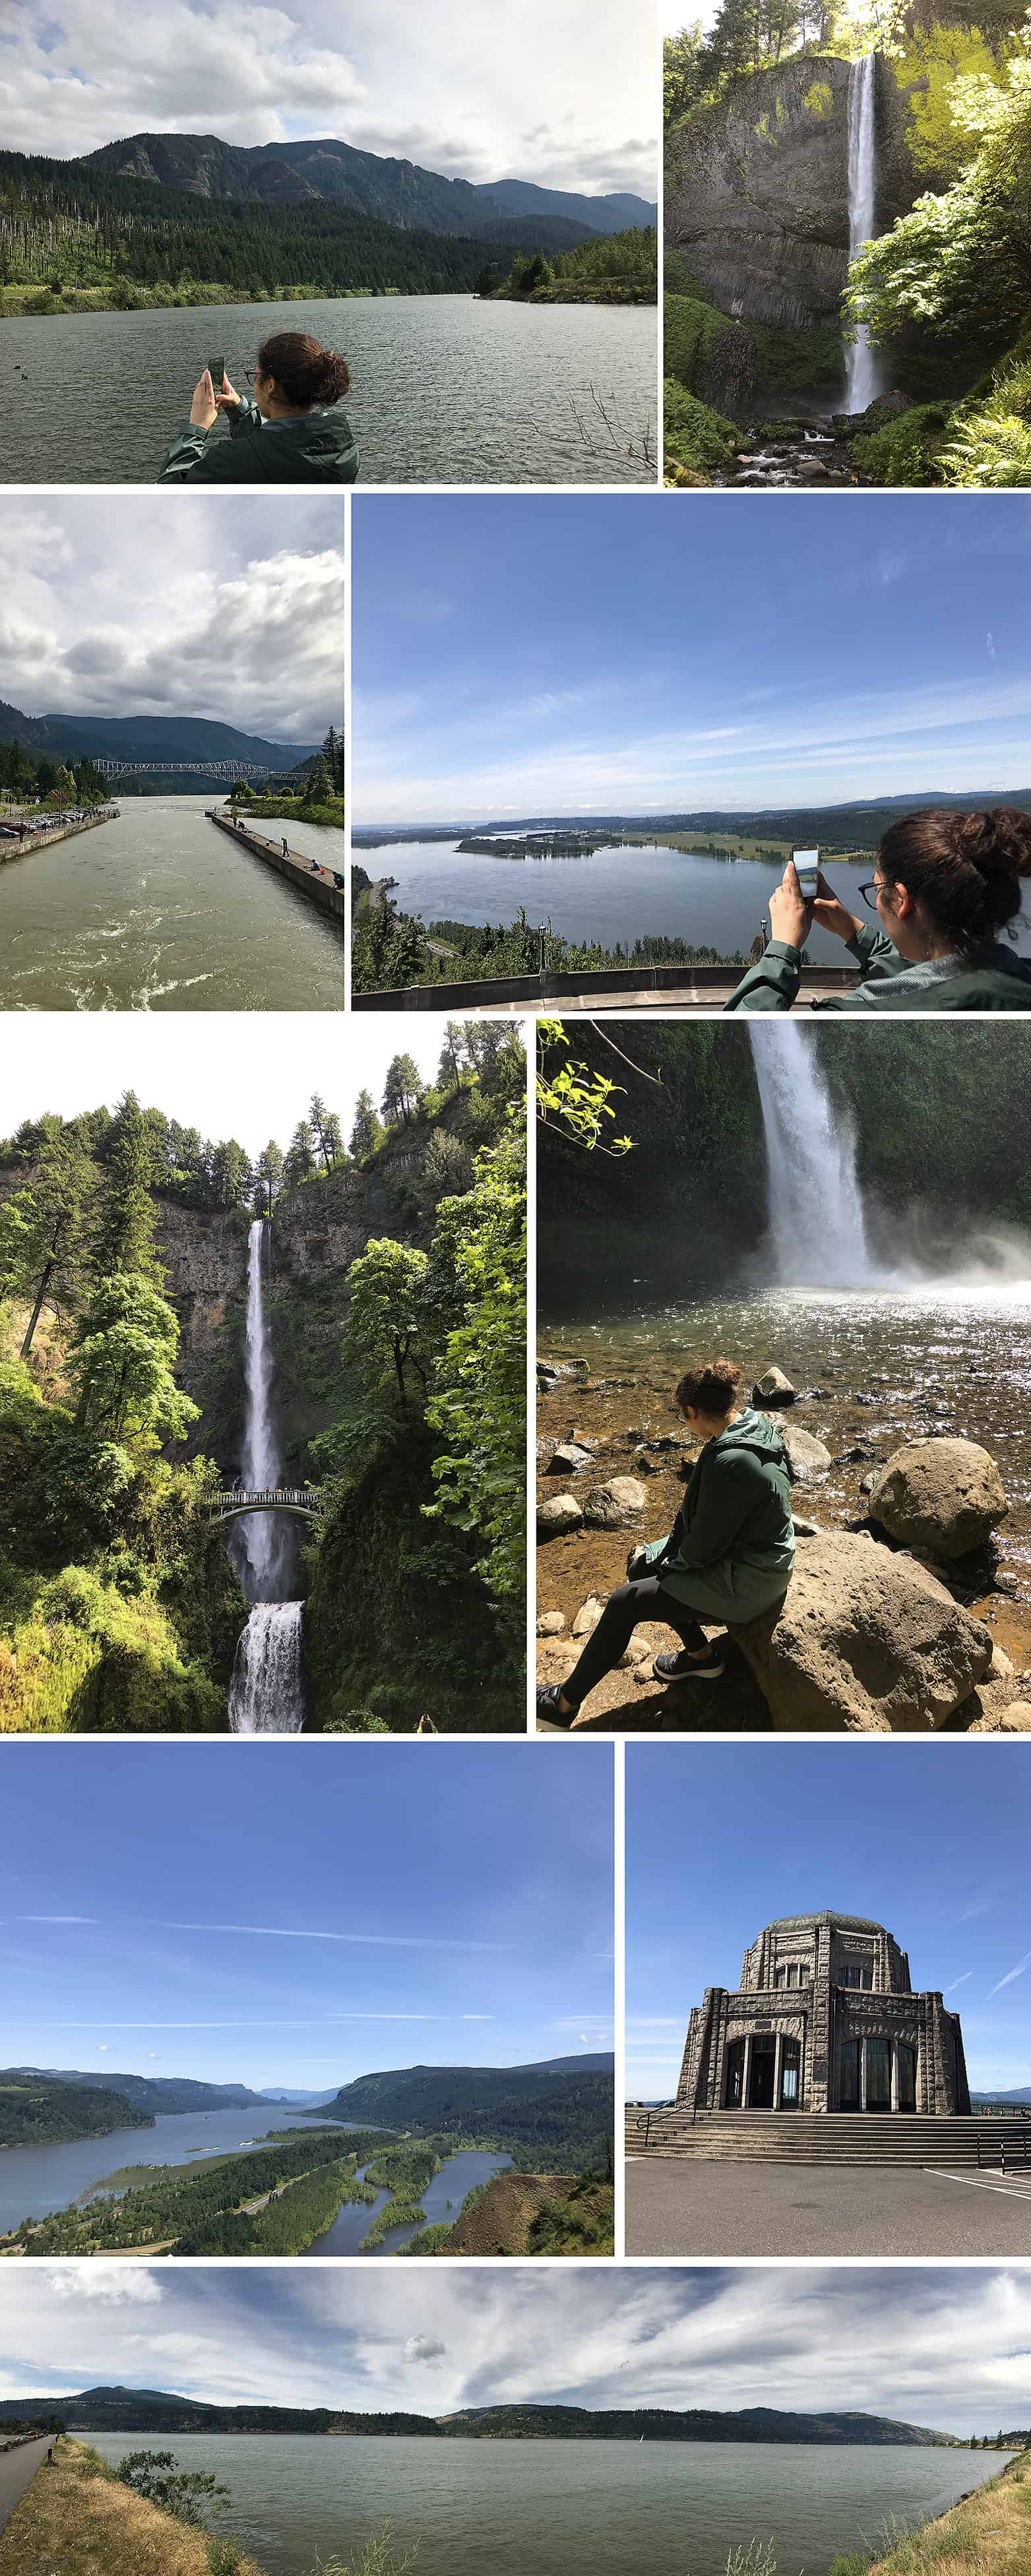 Multnomah Falls and other waterfalls with Gorge Views